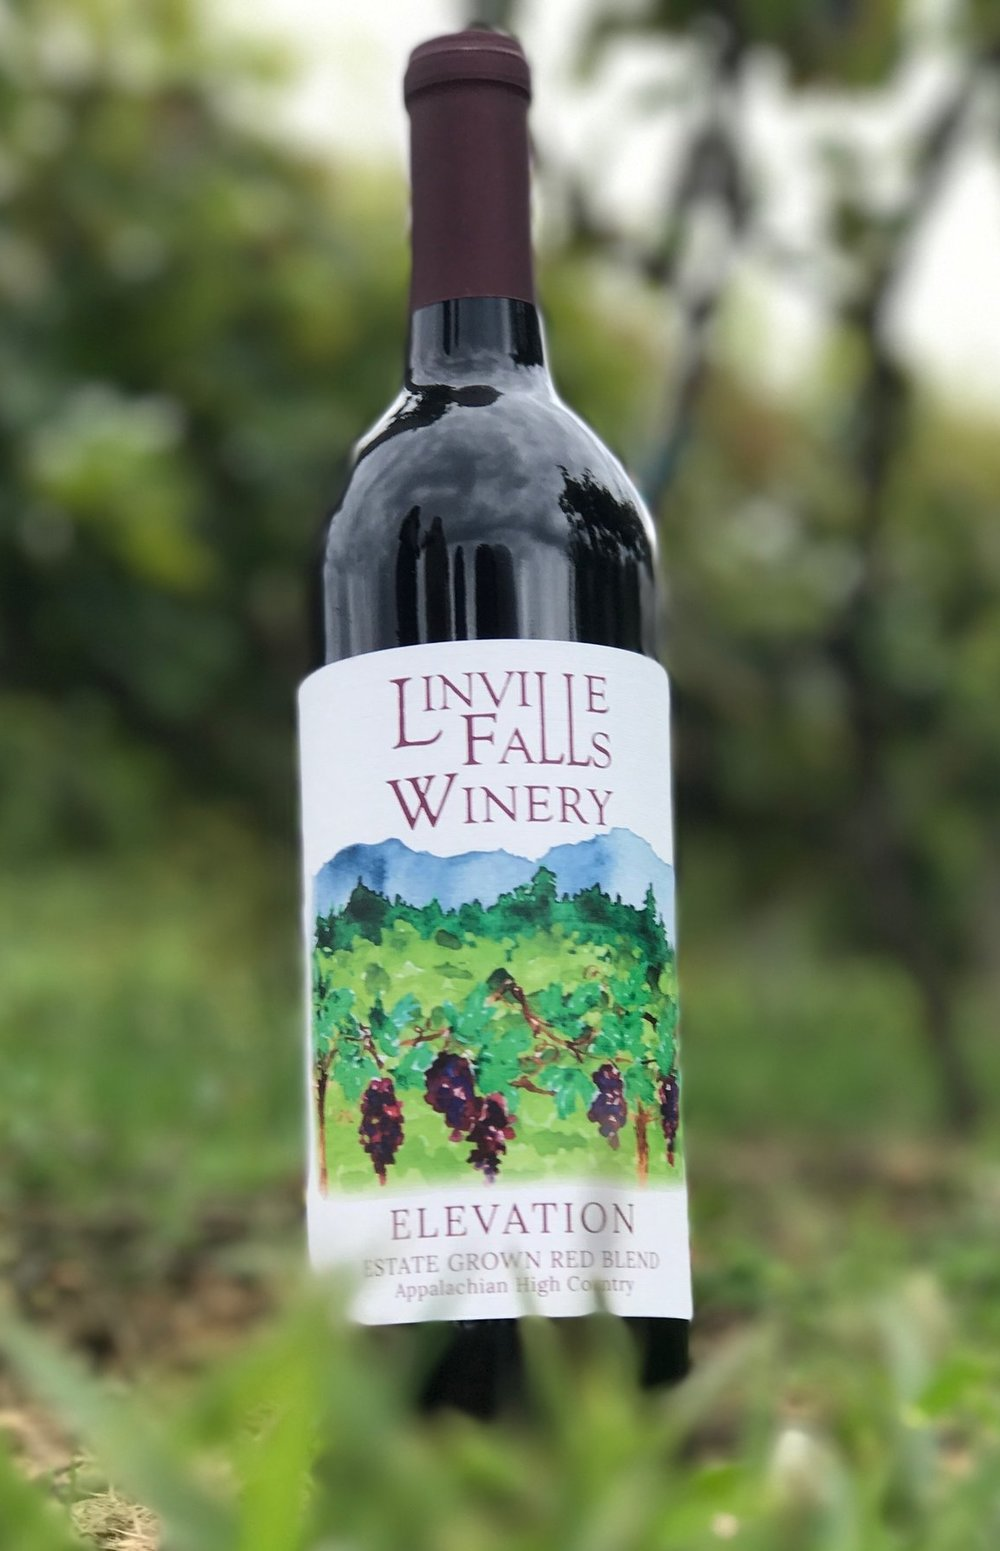 Elevation - Estate Grown at an Elevation of 3200', these red grapes come together in our Winemaker's Blend to create a truly unique wine. You'll encounter flavors of earthy herbs, subtle spice, and berries in this house favorite.